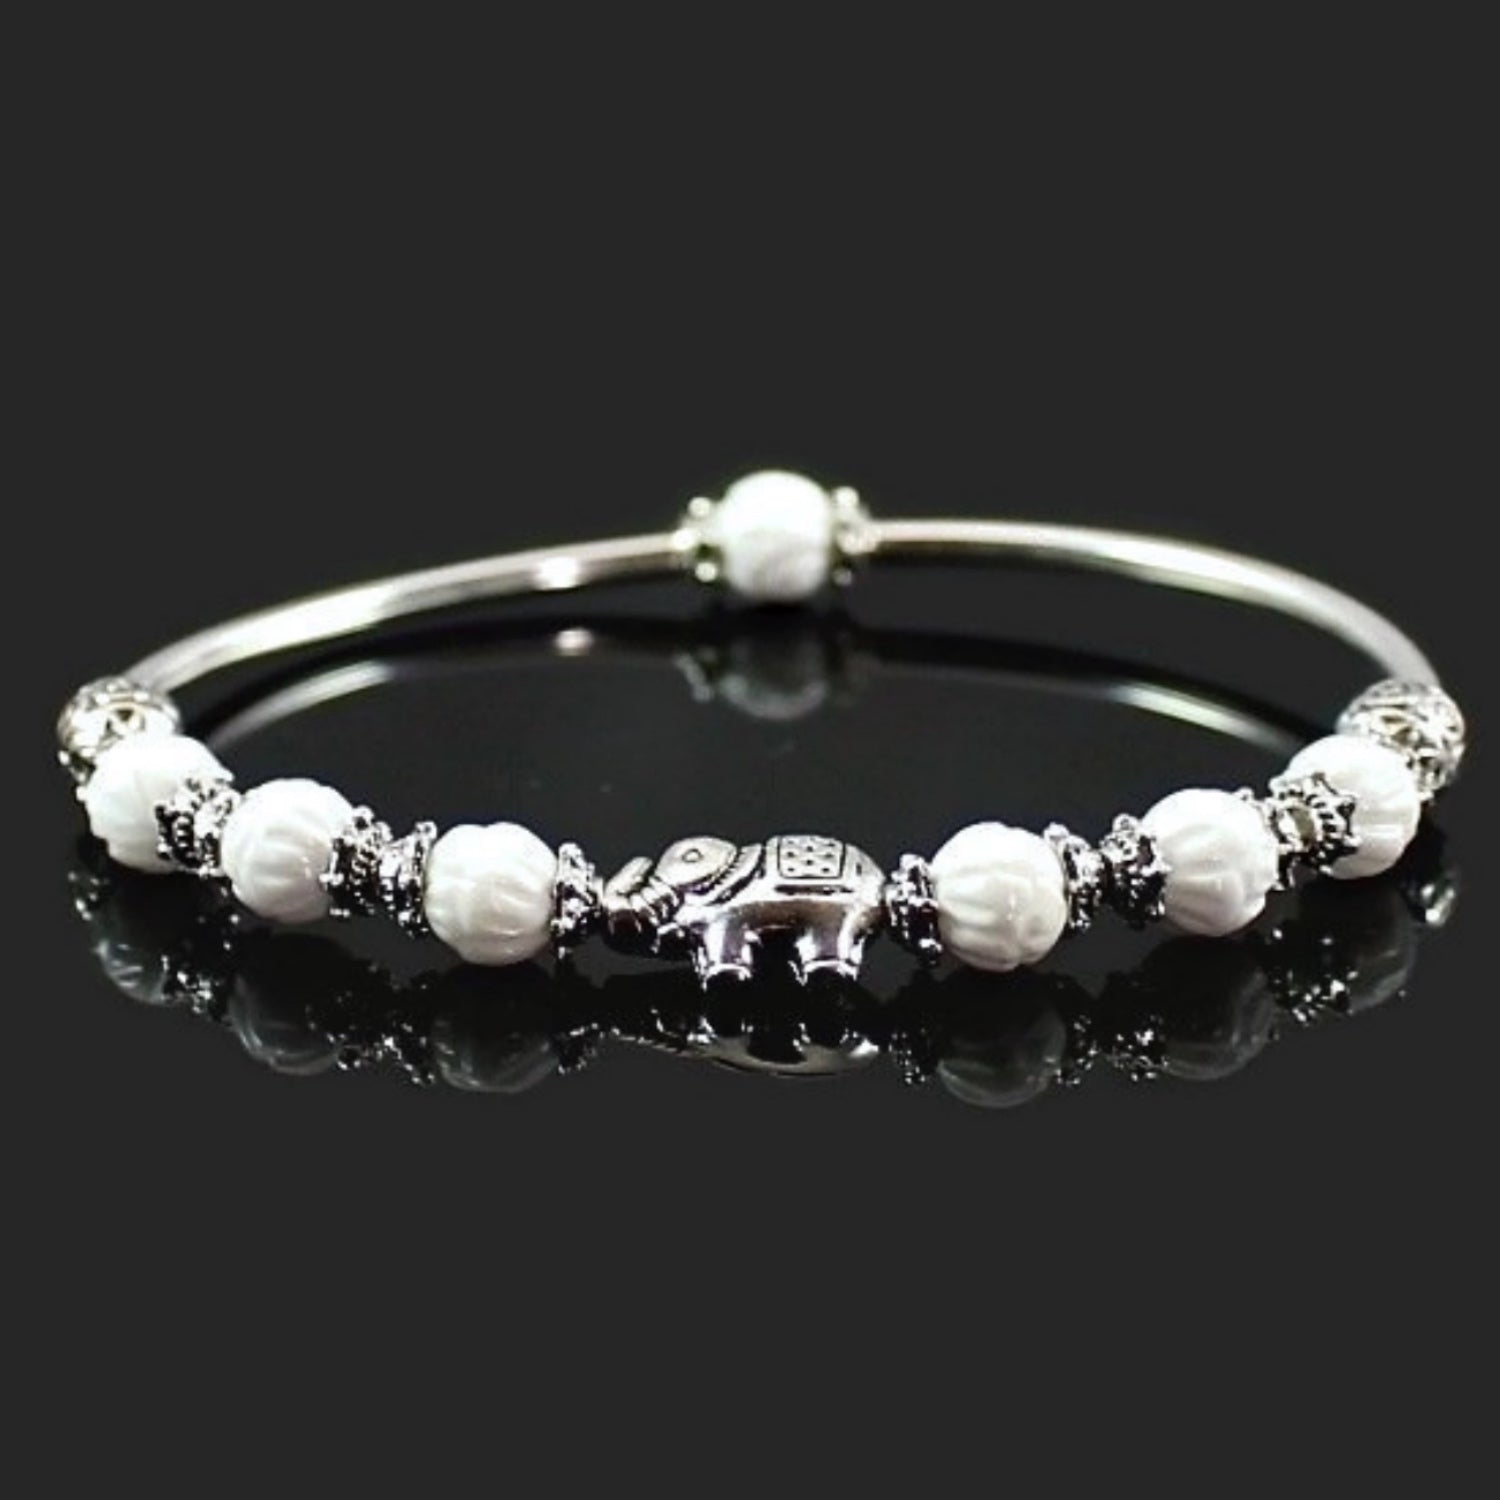 Elephant Stretch Bangle Bracelet with Tridacna Shell Beads